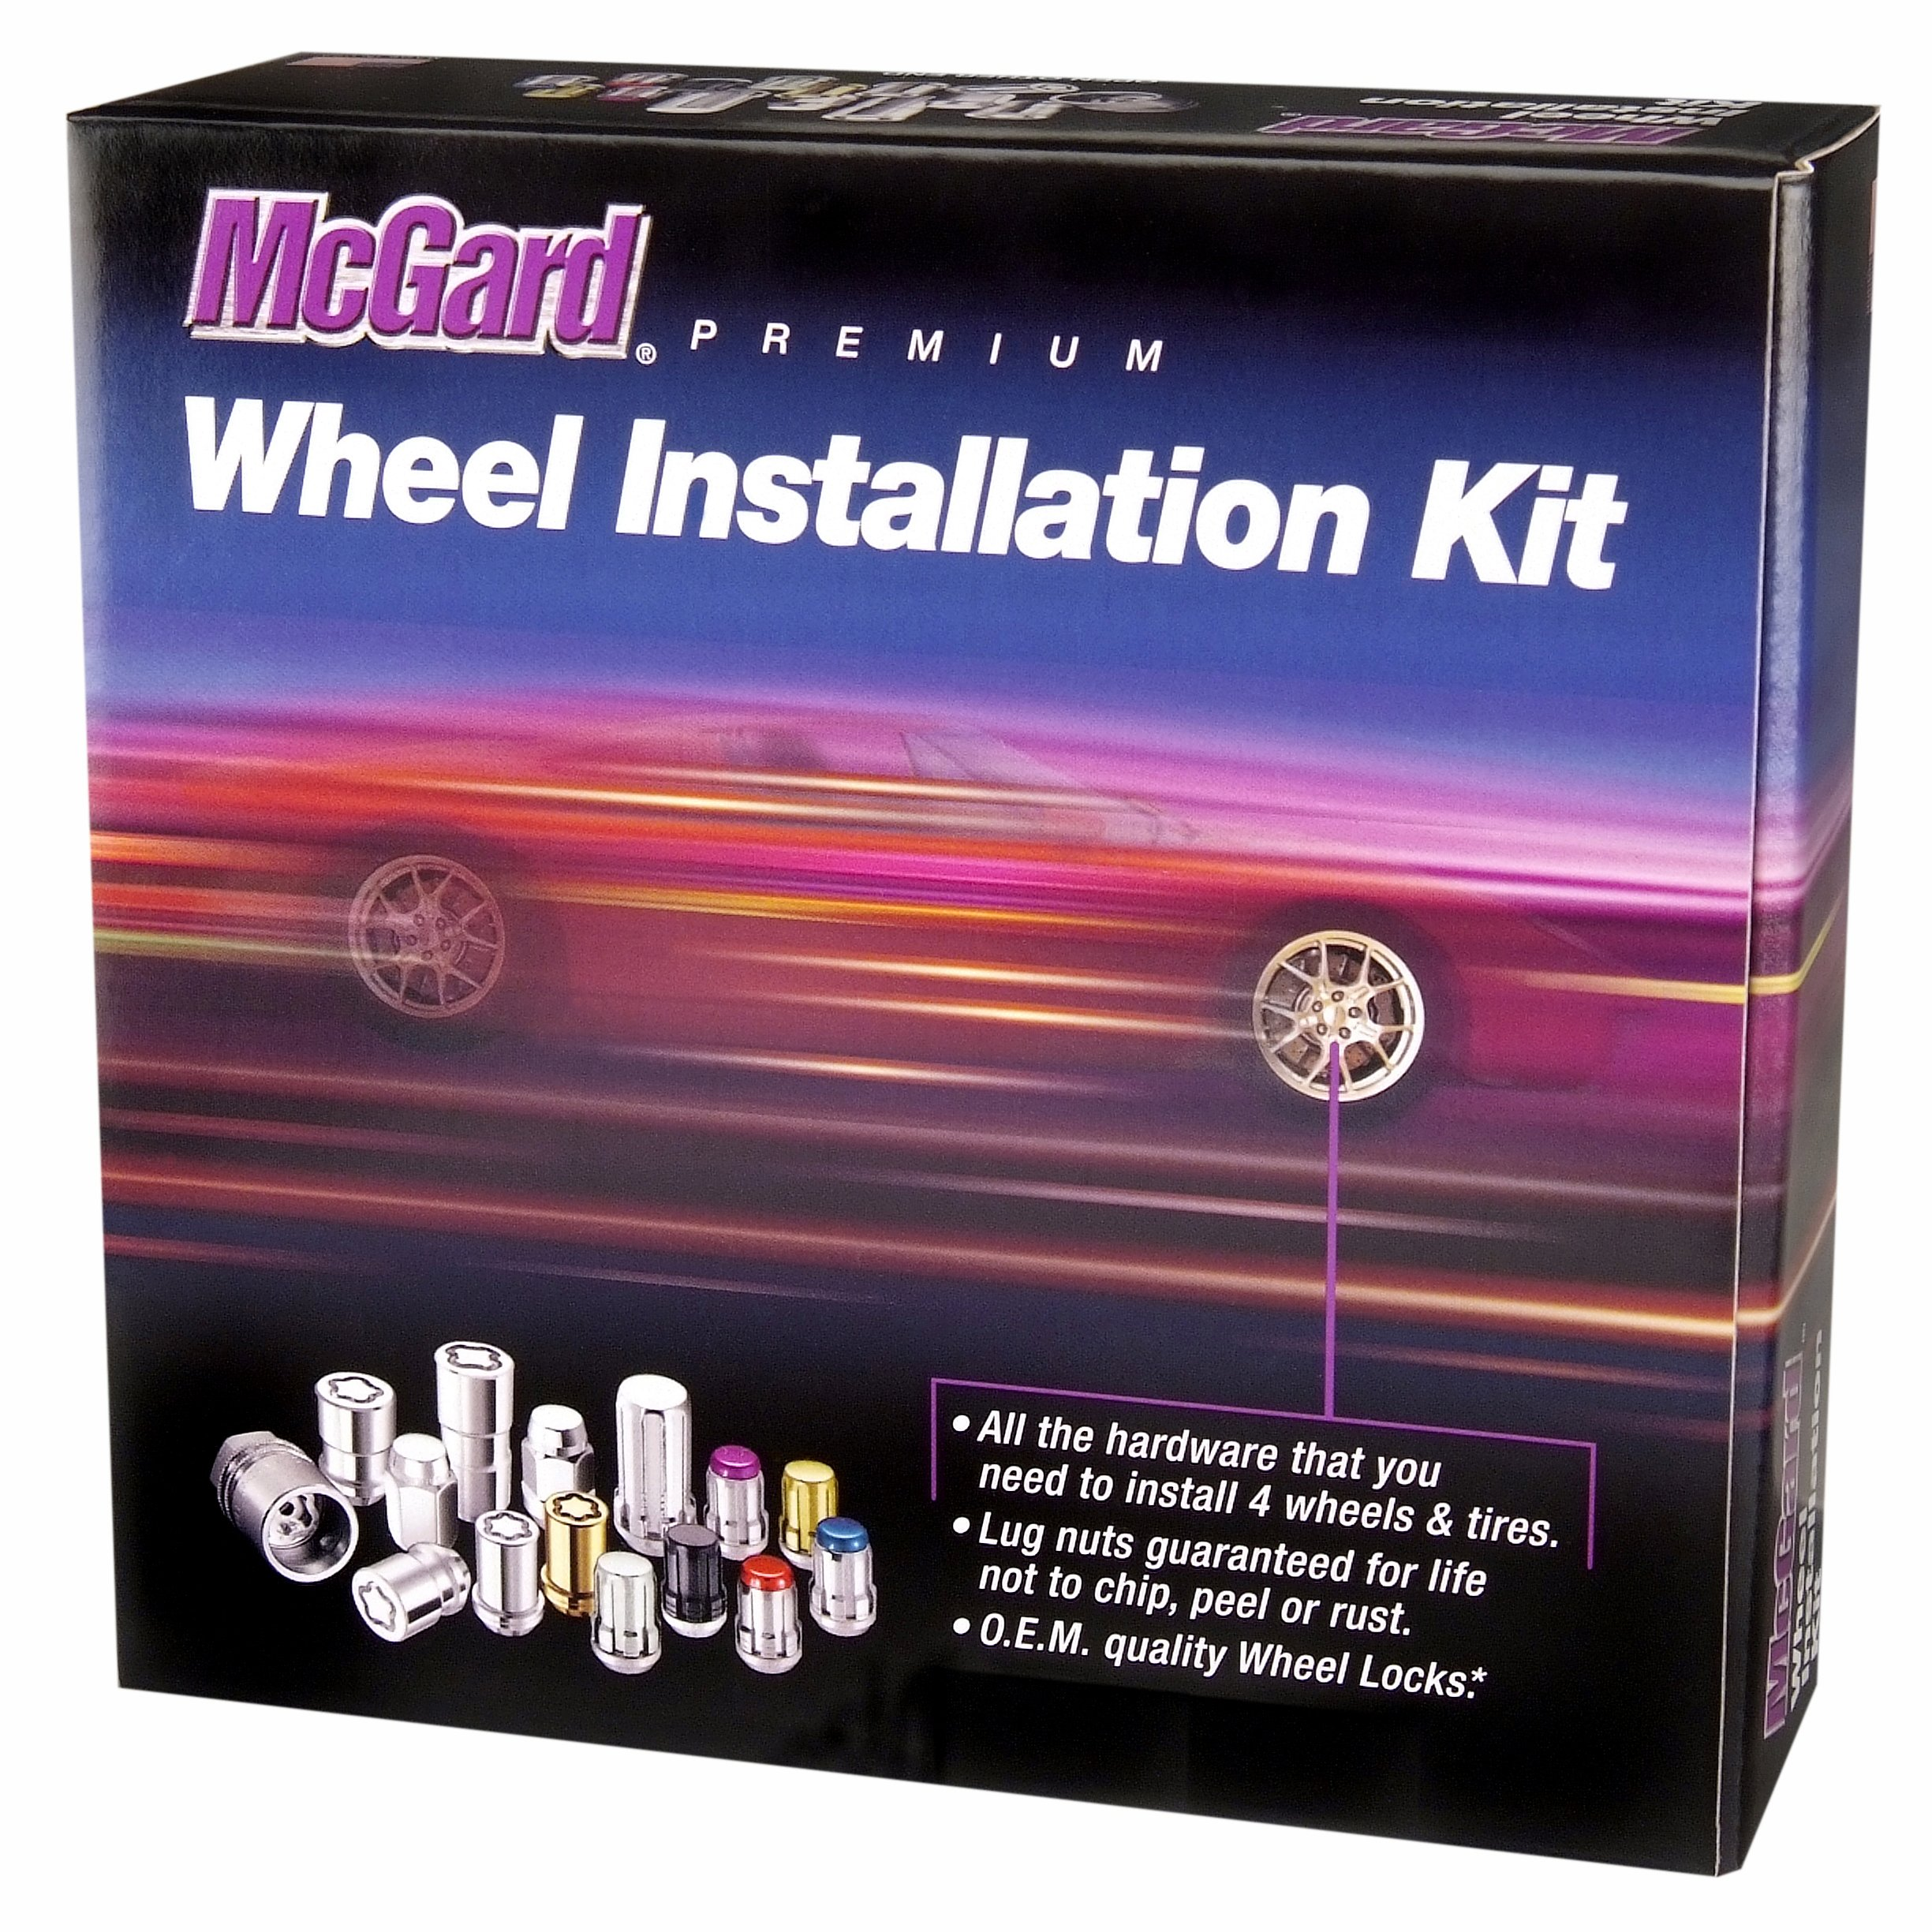 McGard 65540BK SplineDrive Chrome/Black (1/2'' - 20 Thread Size) Wheel Installation Kit for 5-Lug Wheels